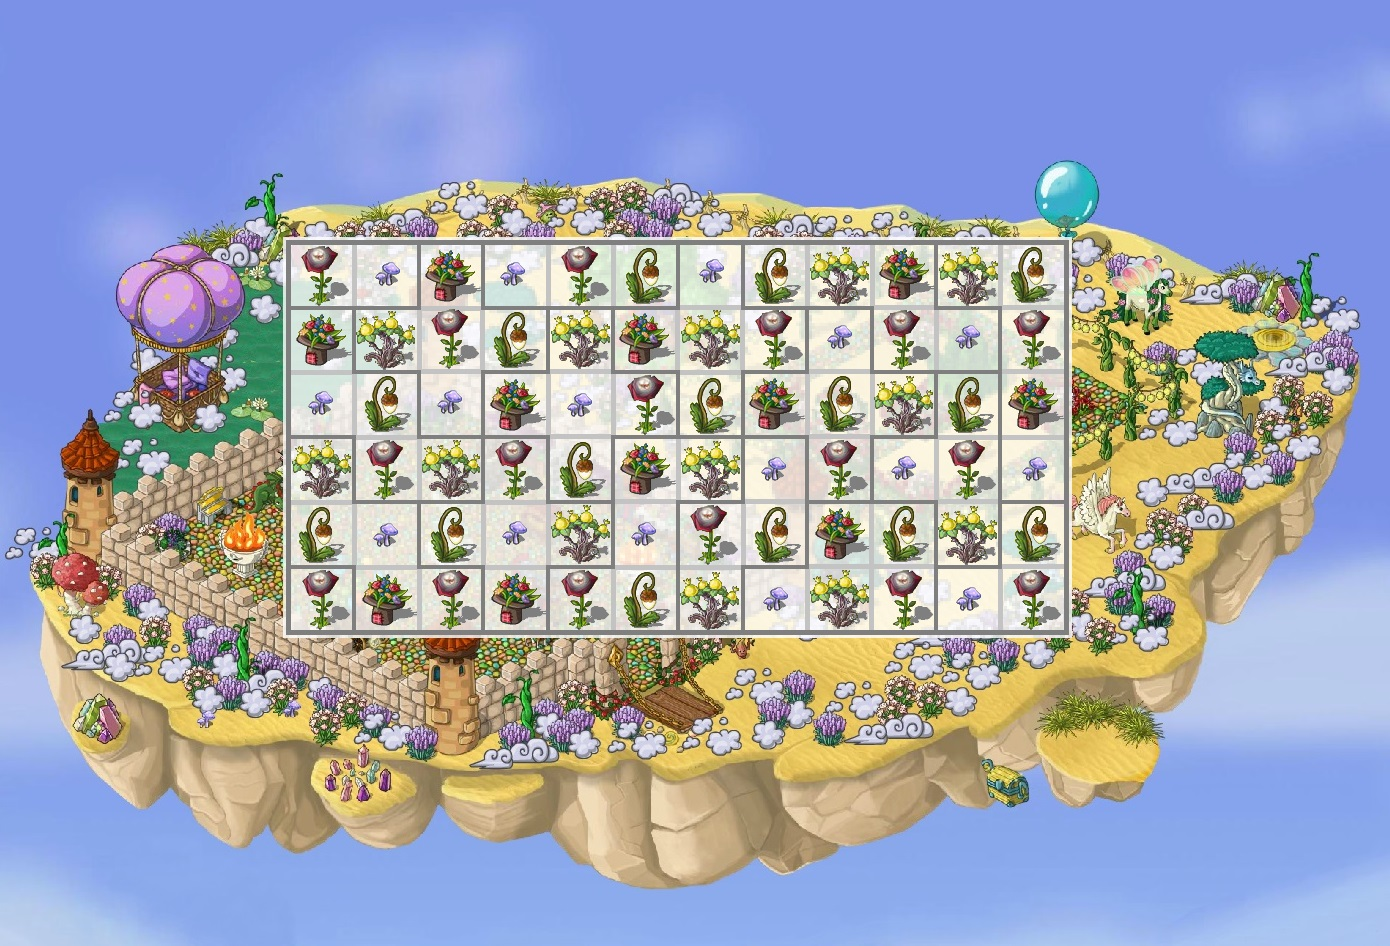 Name:  Giftbox Puzzler 2020 Fairytale, solution.jpg Views: 80 Size:  488.7 KB